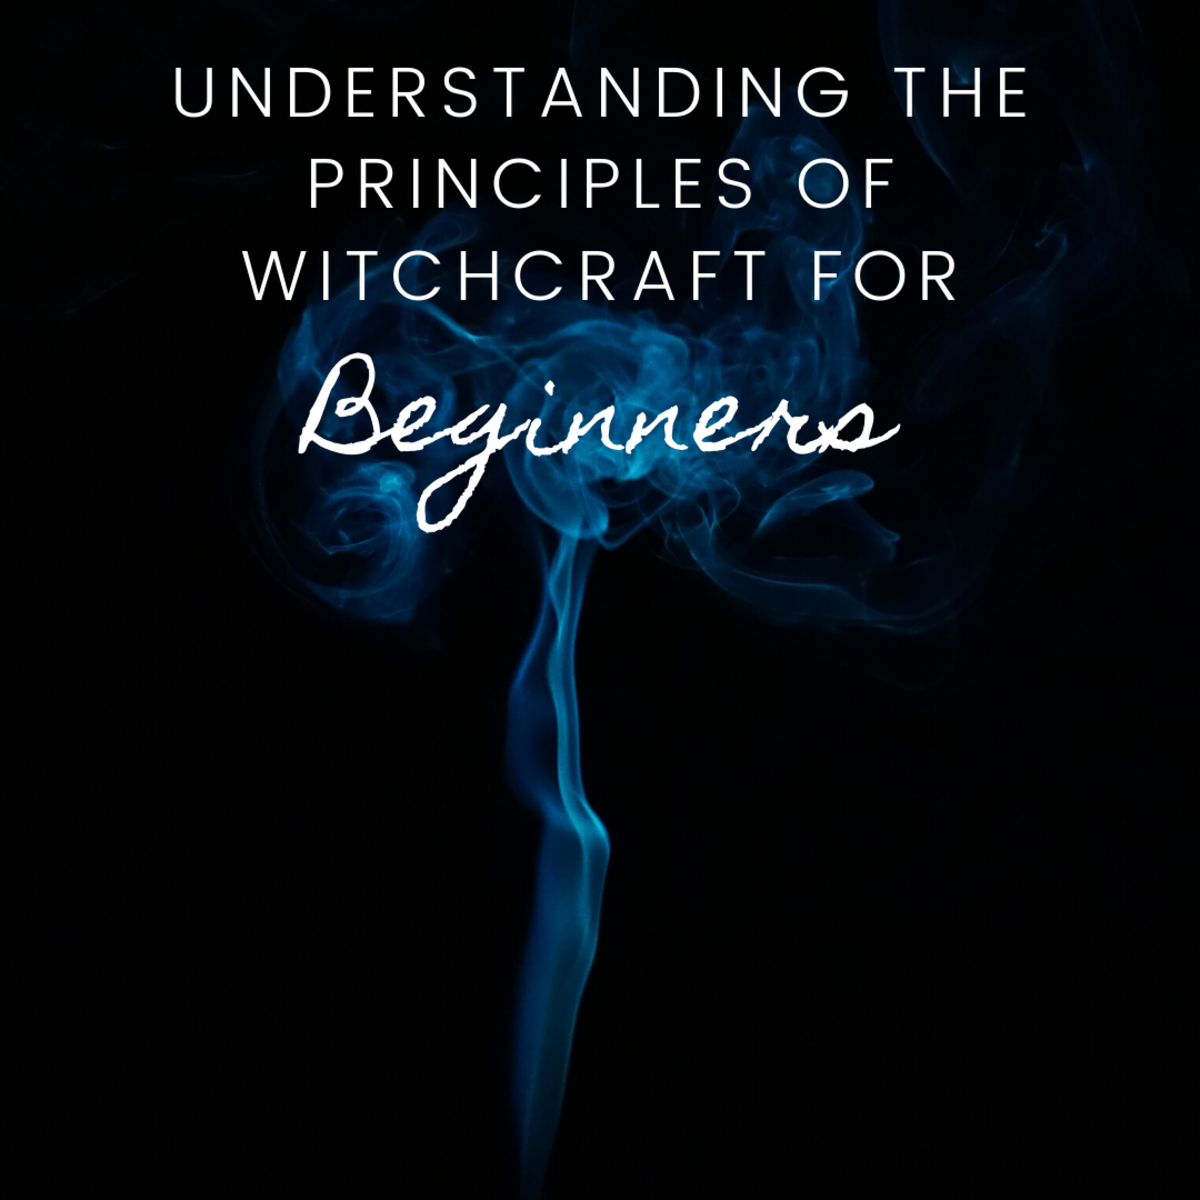 Understanding the Principles of Witchcraft for Beginners